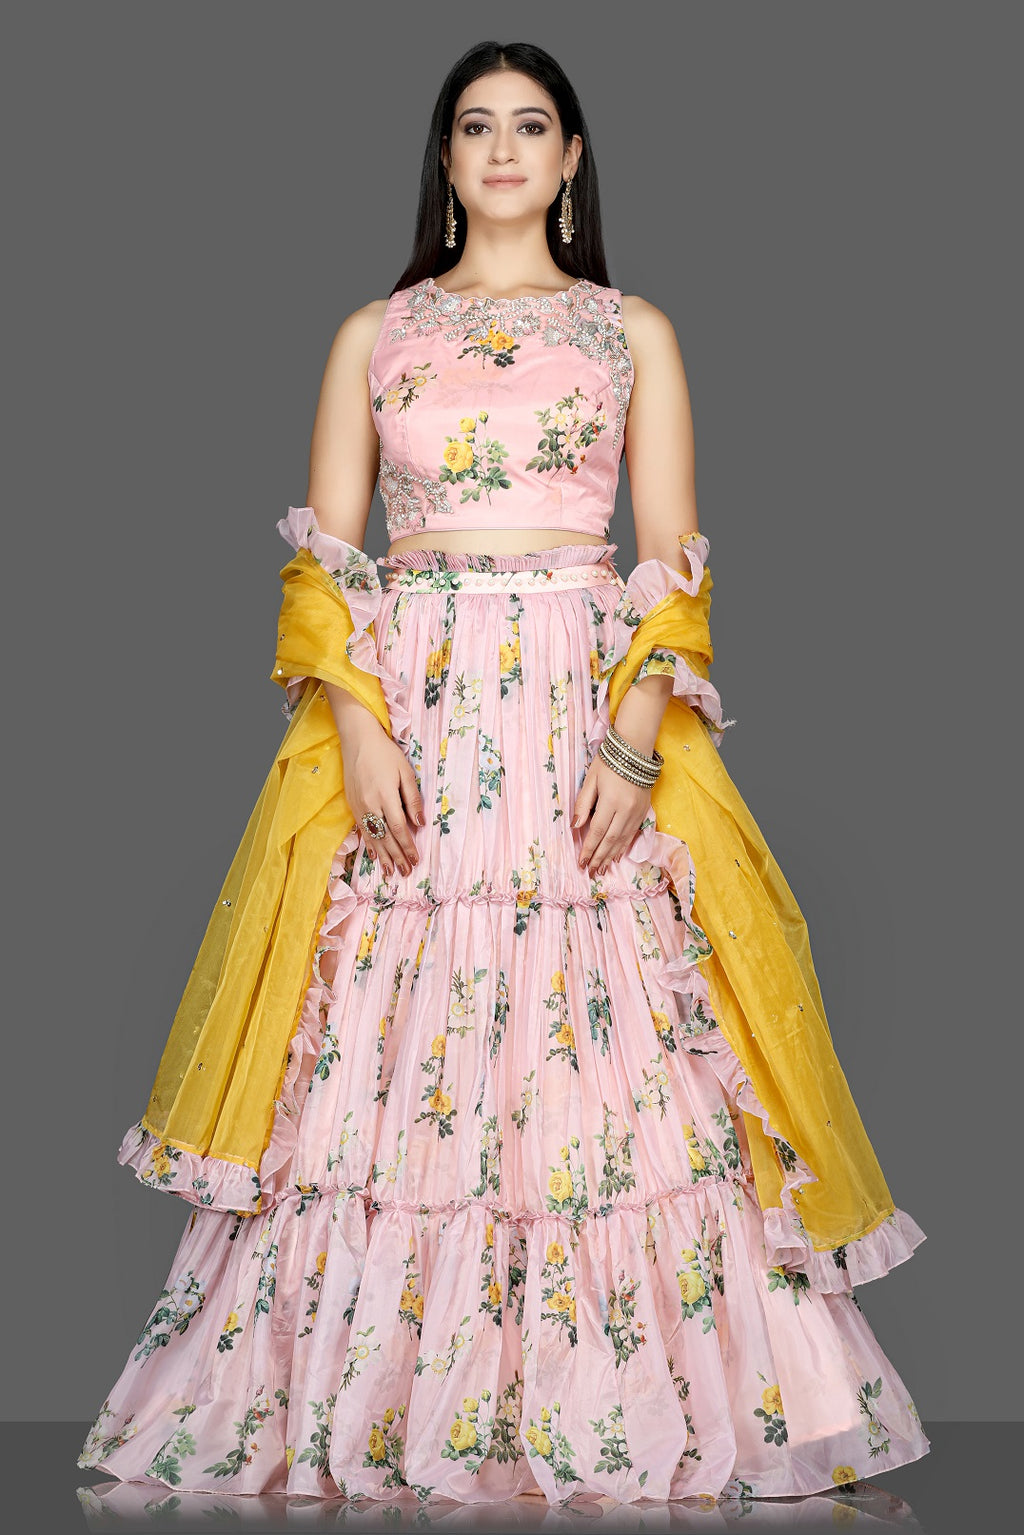 Buy stunning powder pink floral organza silk lehenga online in USA with yellow dupatta. Flaunt ethnic fashion with exquisite designer lehenga, Indian wedding dresses from Pure Elegance Indian fashion boutique in USA.-full view